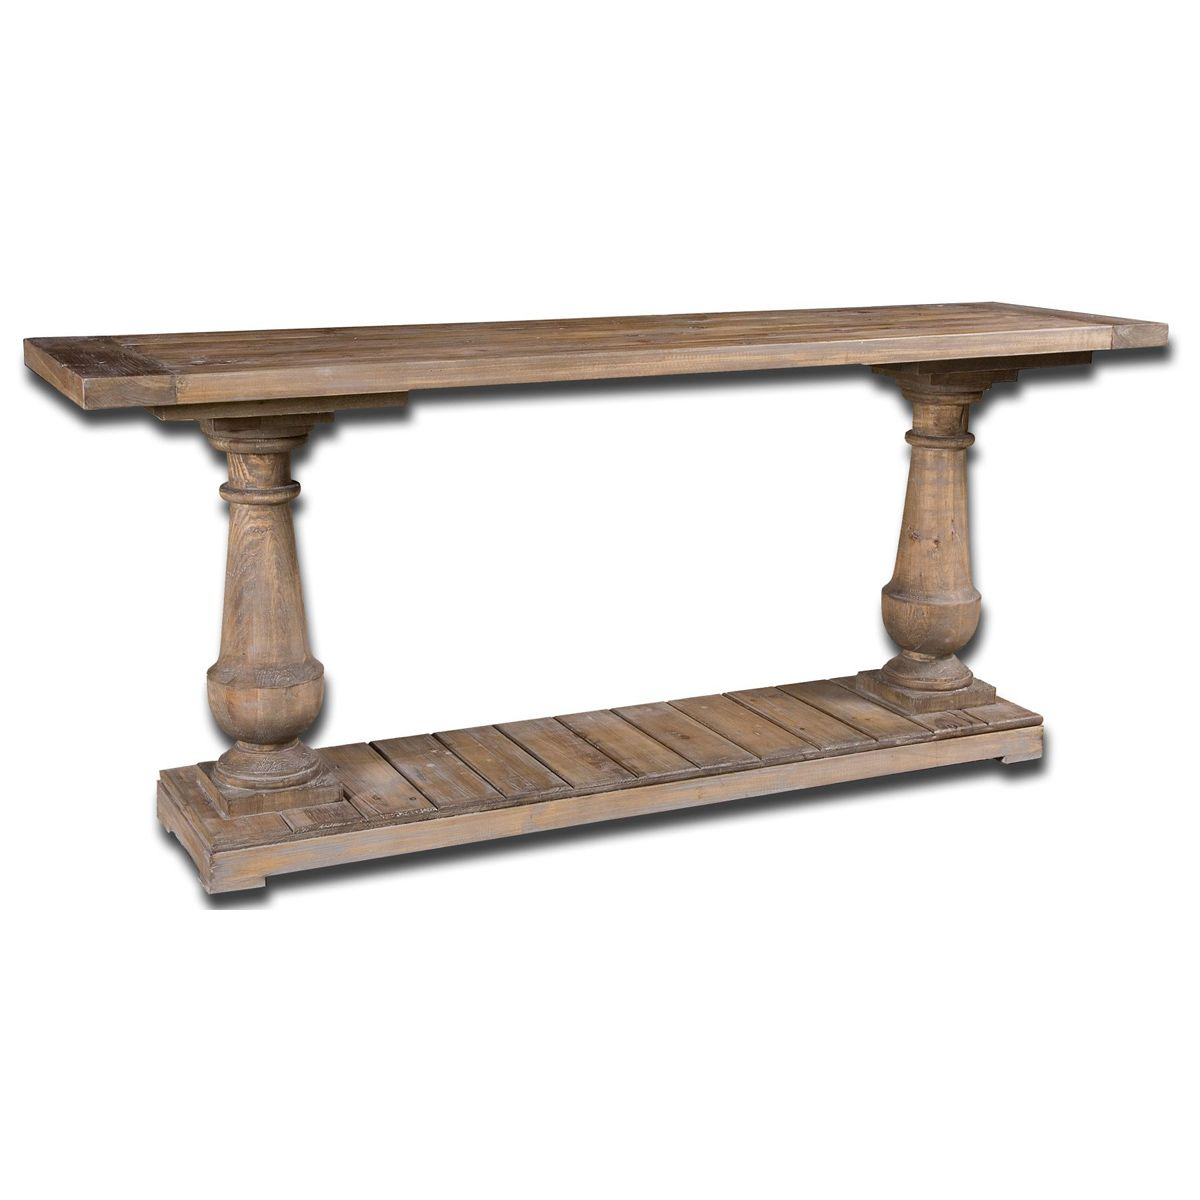 Stratford Console Table - OUT OF STOCK UNTIL 12/8/2020